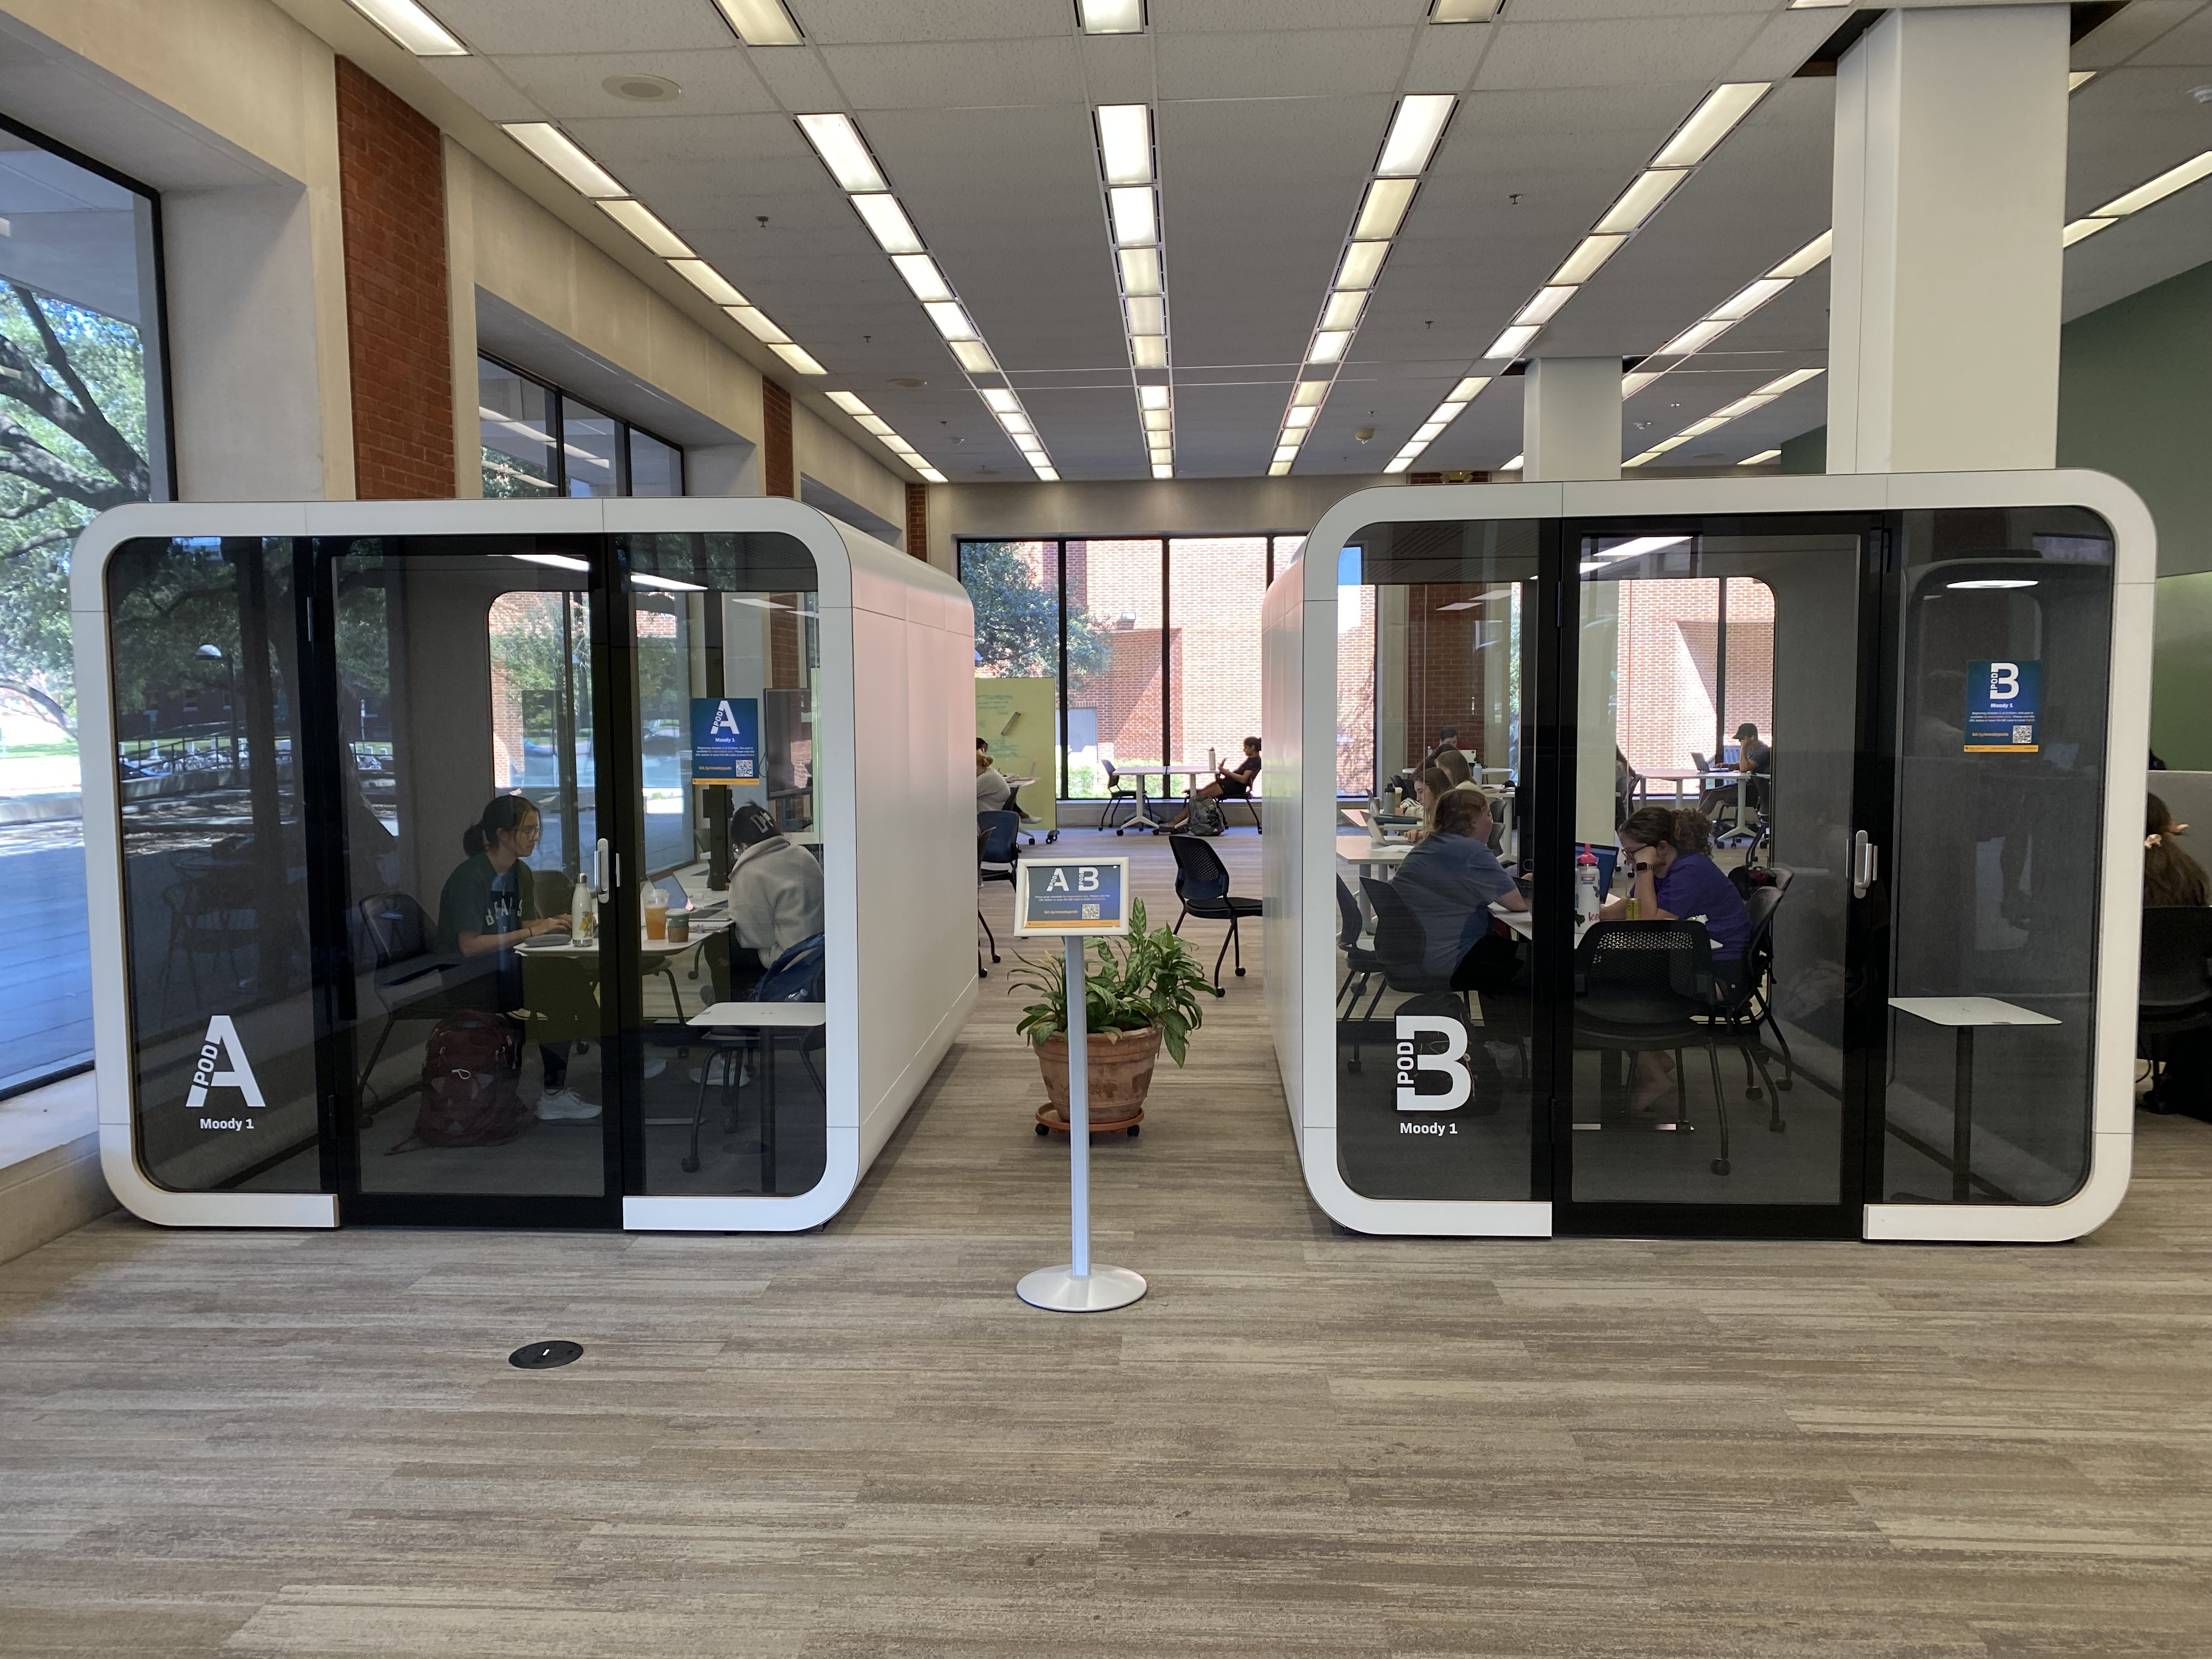 image of study pods A and B